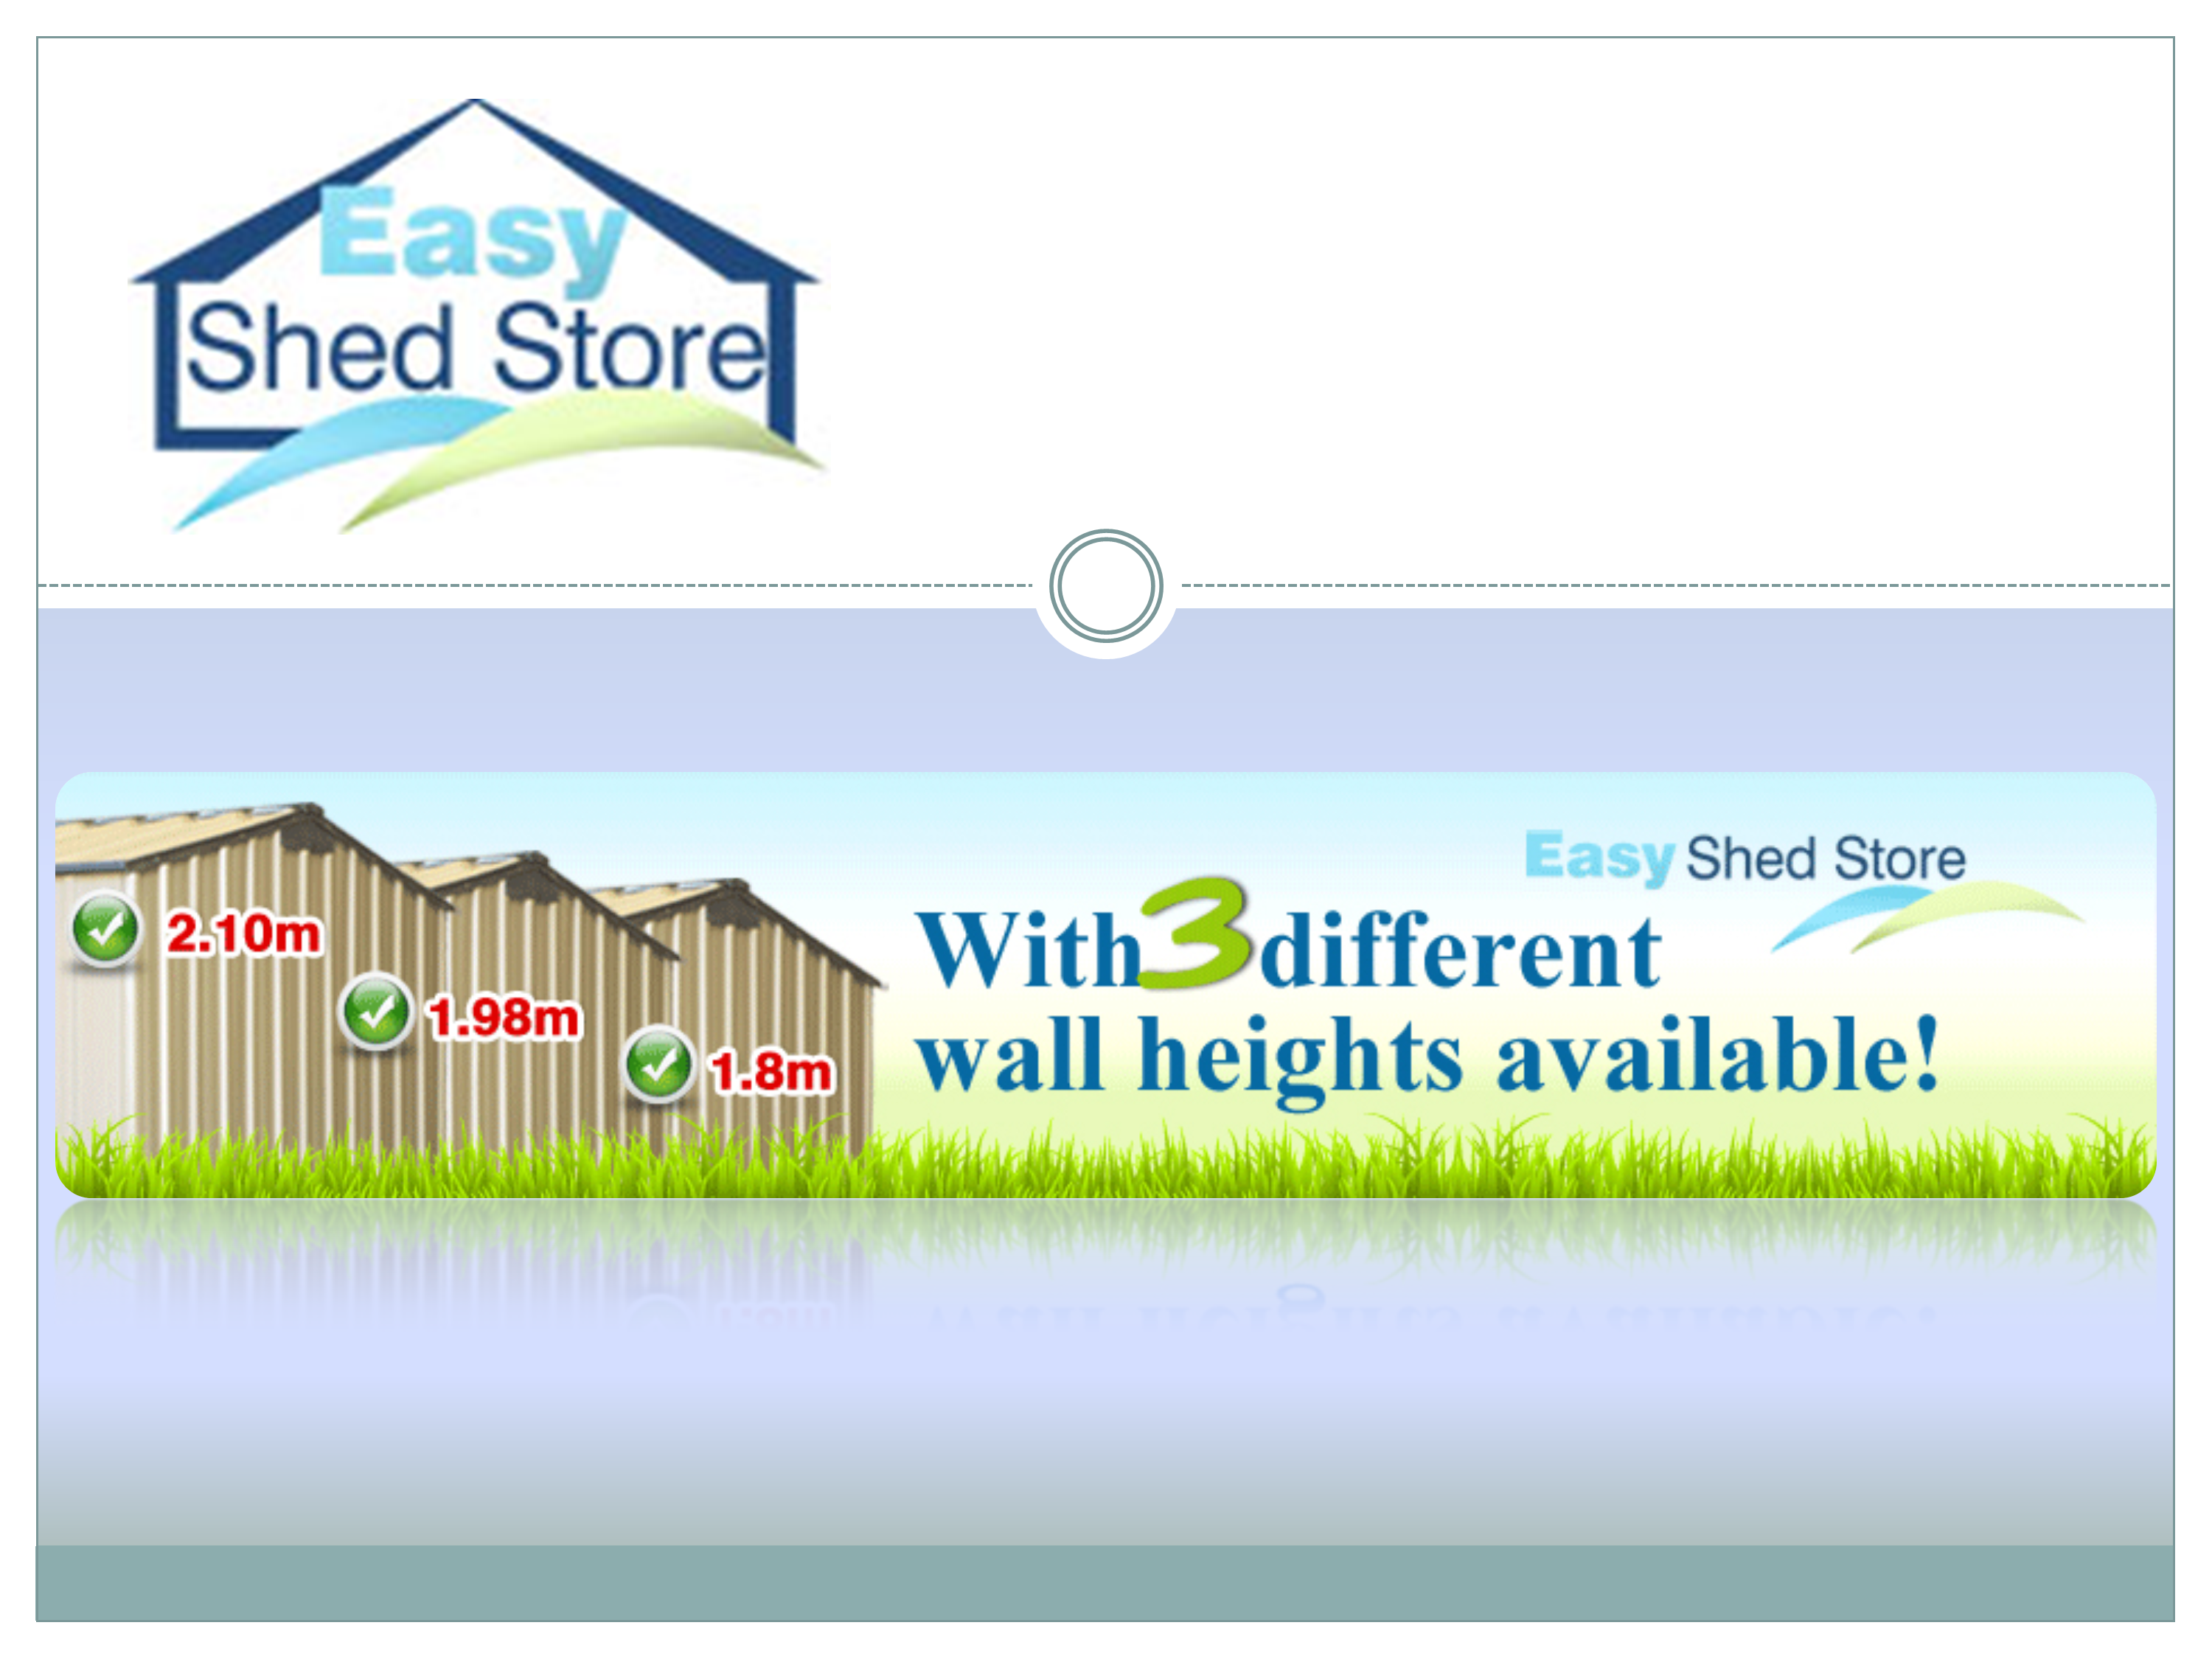 Easy shed store garden or powerpoint for Simply sheds online